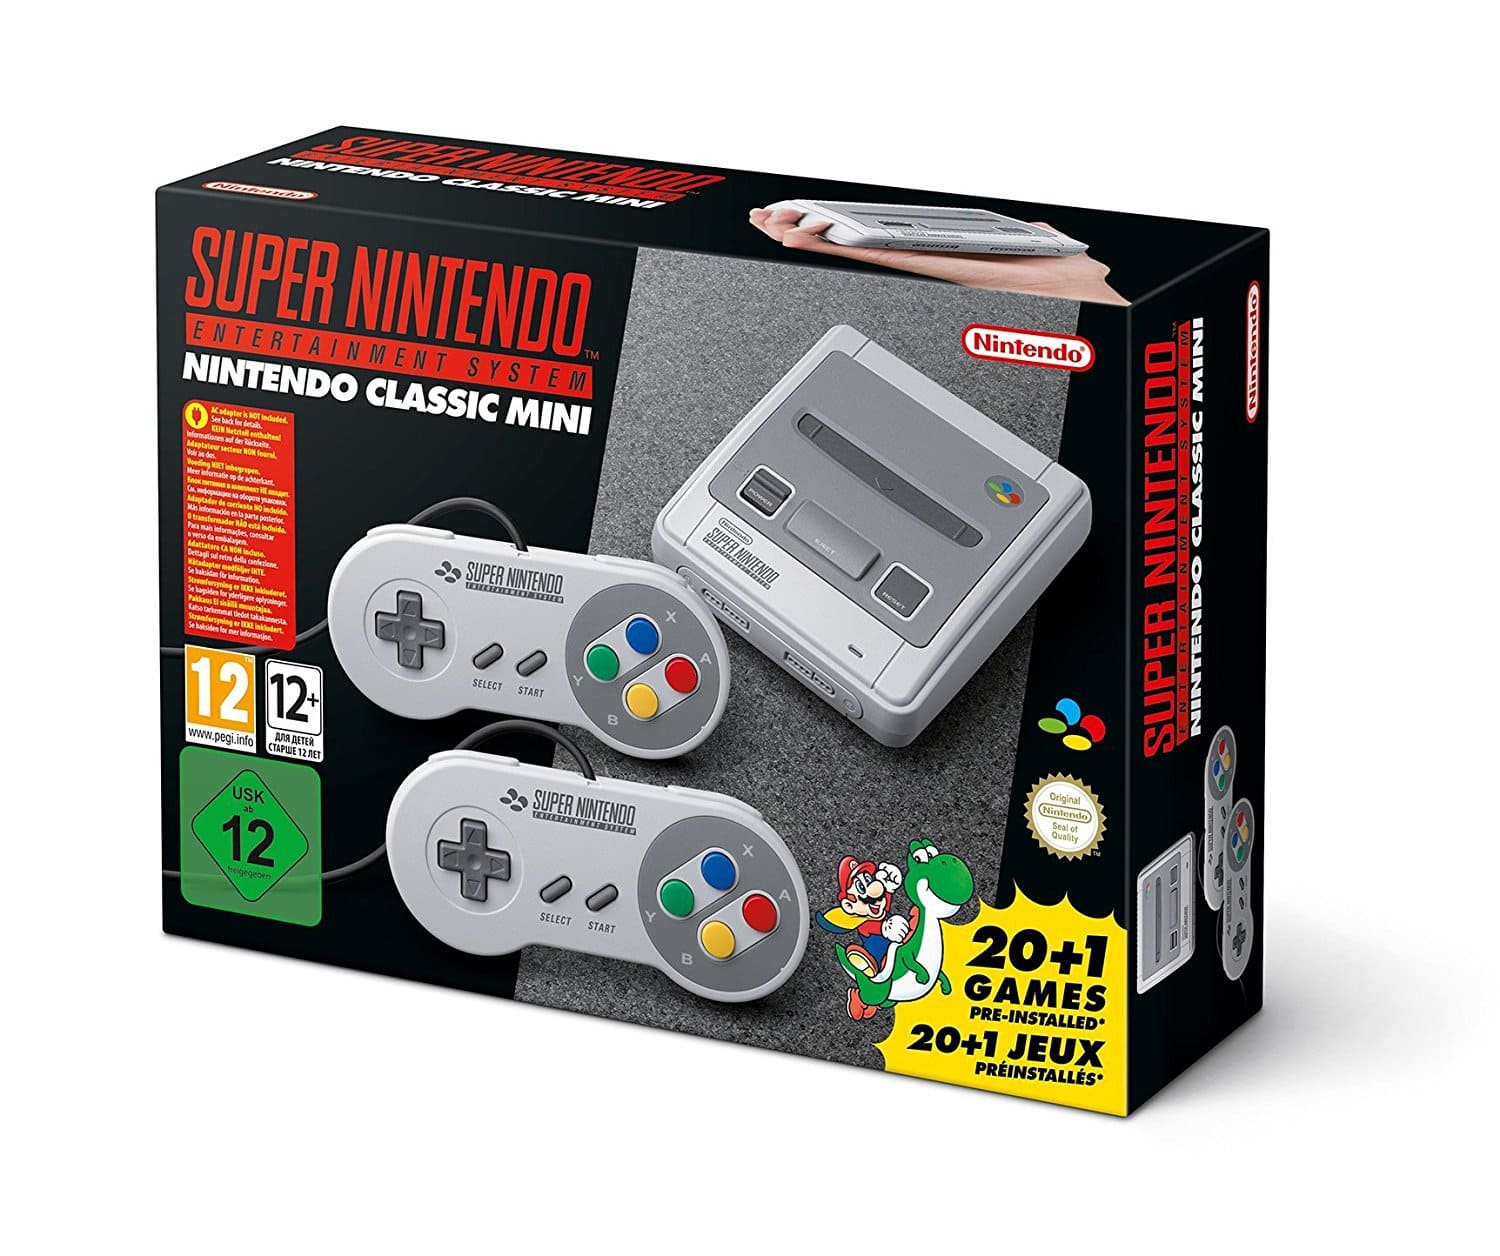 Nintendo Classic Mini: Super Nintendo Entertainment System SNES Amazon UK $99.24